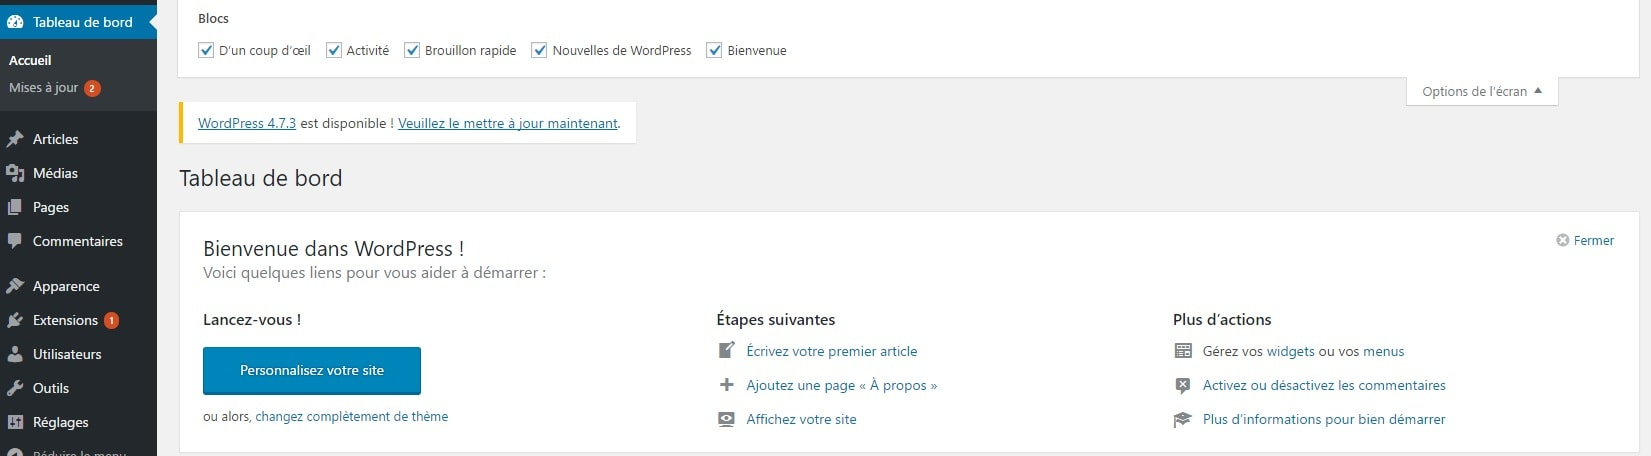 wordpress-tableau-de-bord